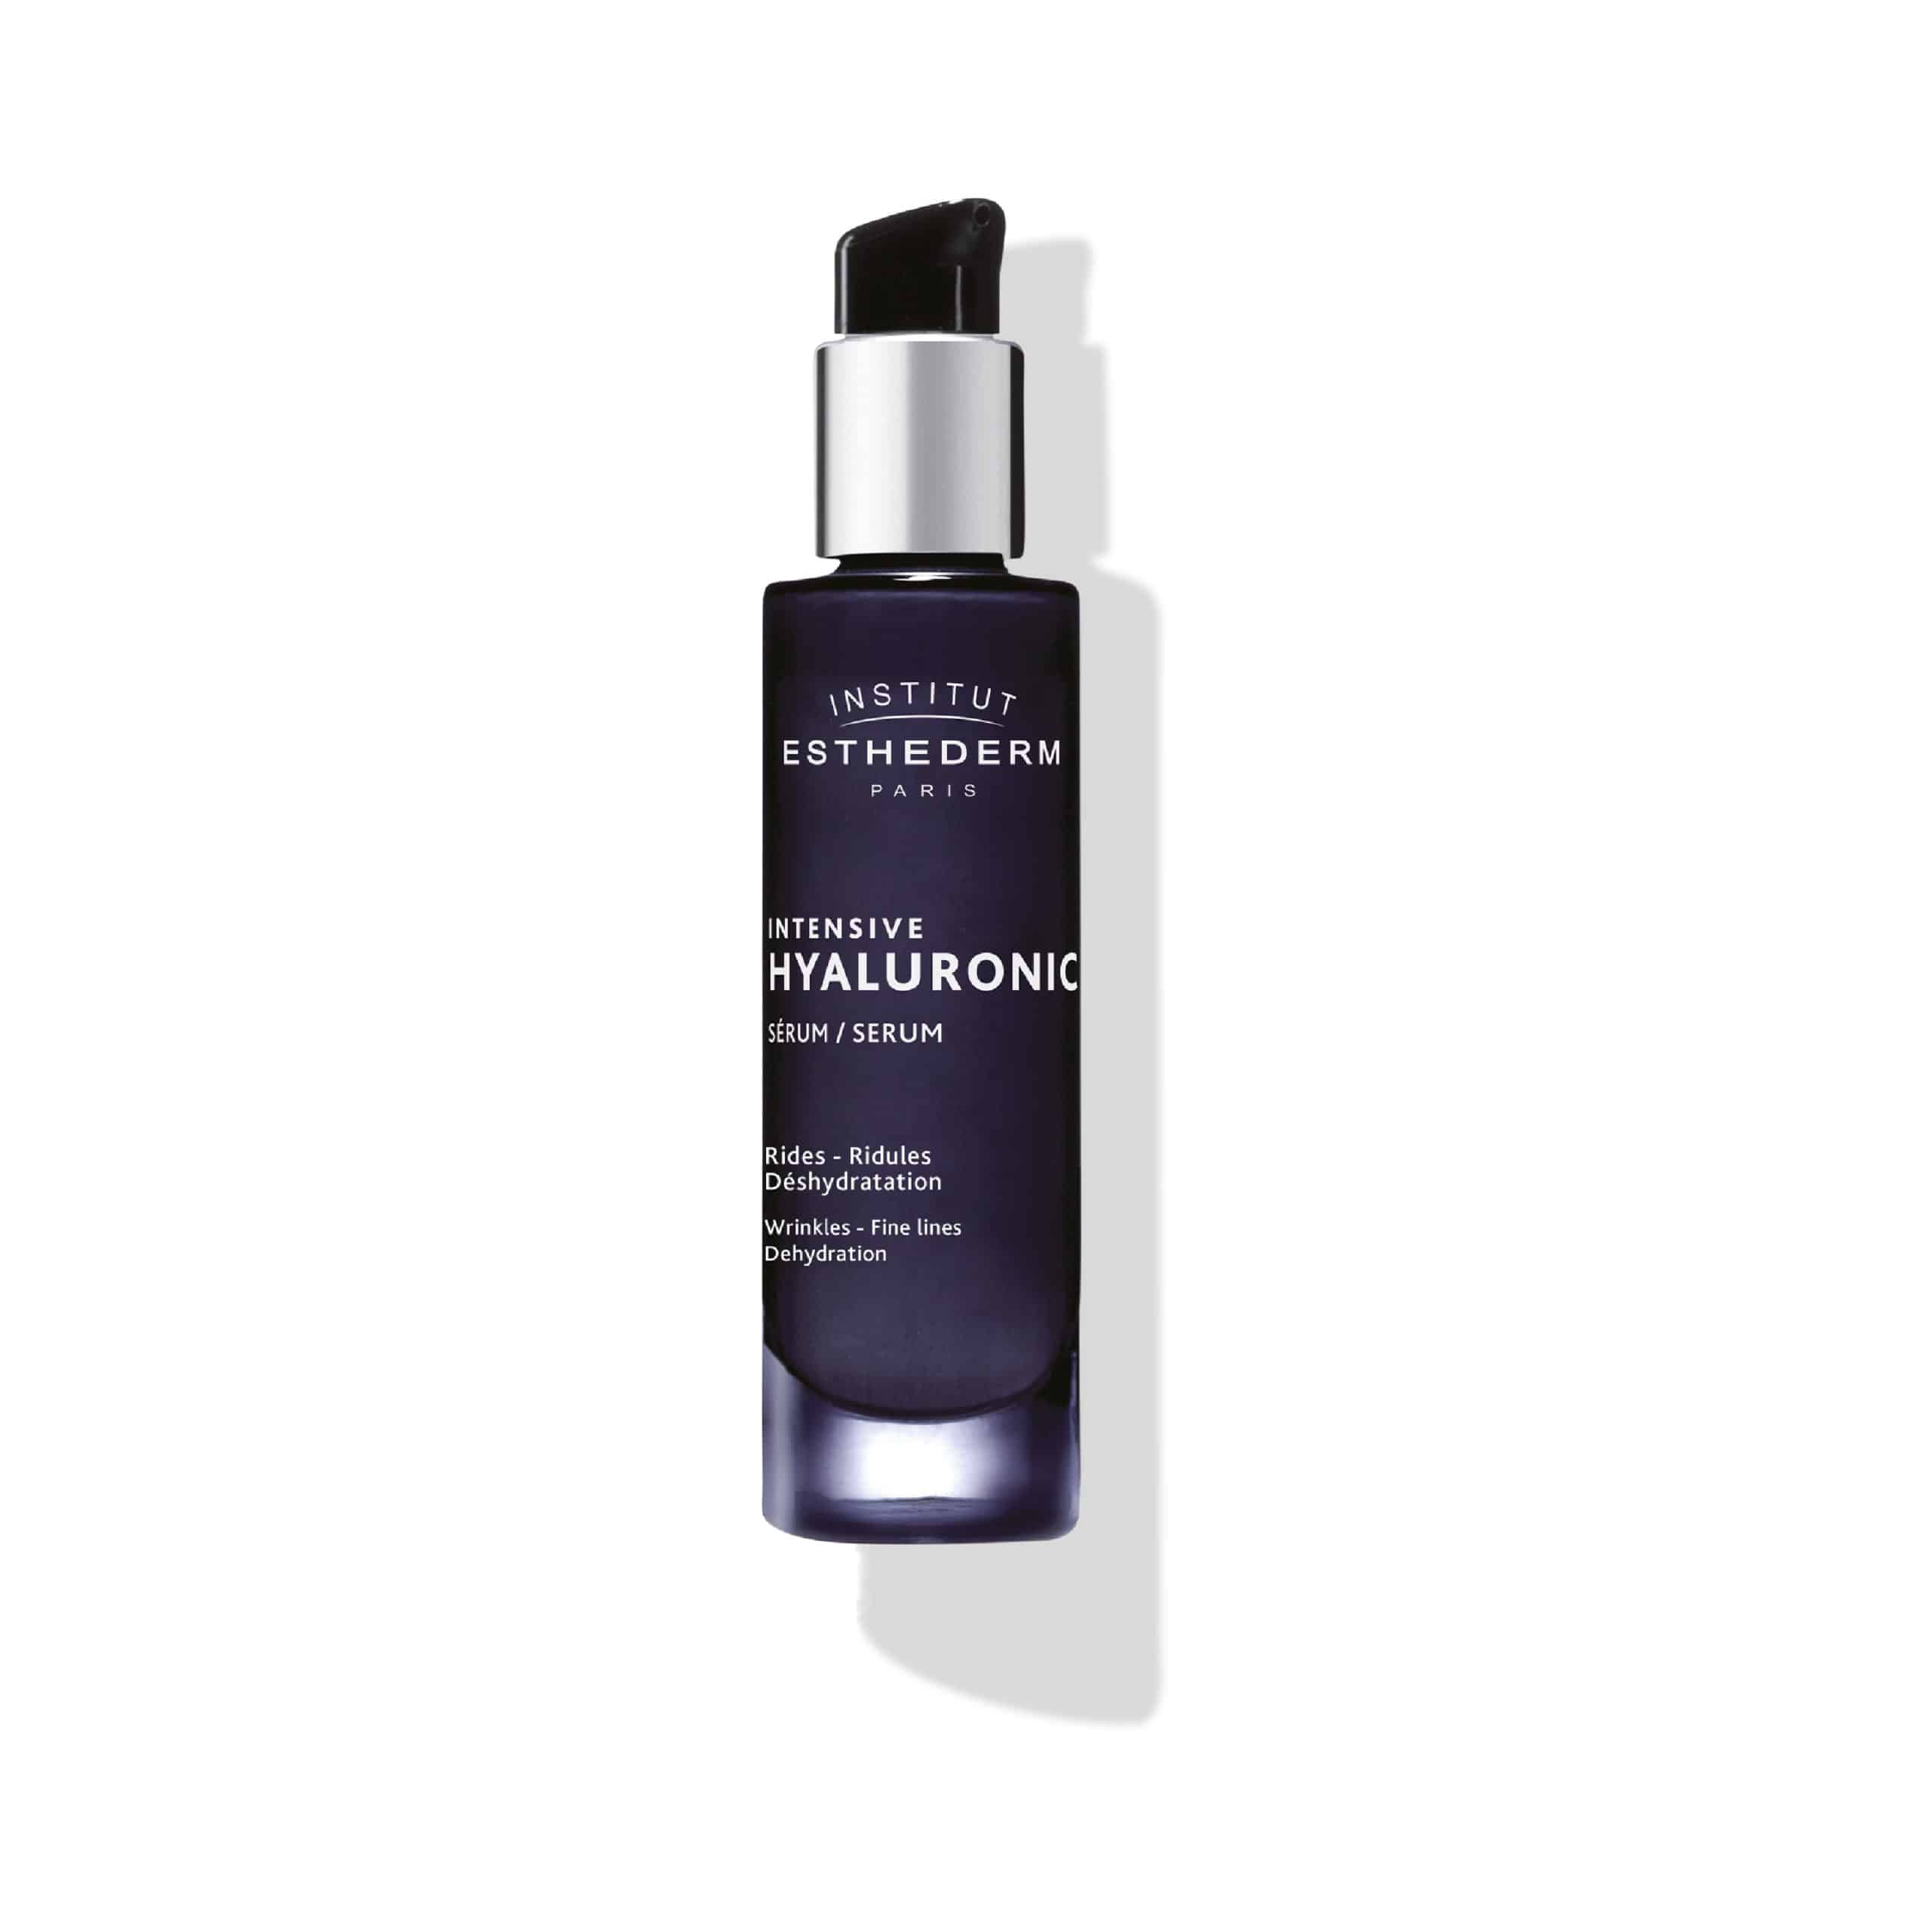 ESTHEDERM product photo, Intensive Hyaluronic Serum 30ml, hydrating, plumping care, first signs of aging